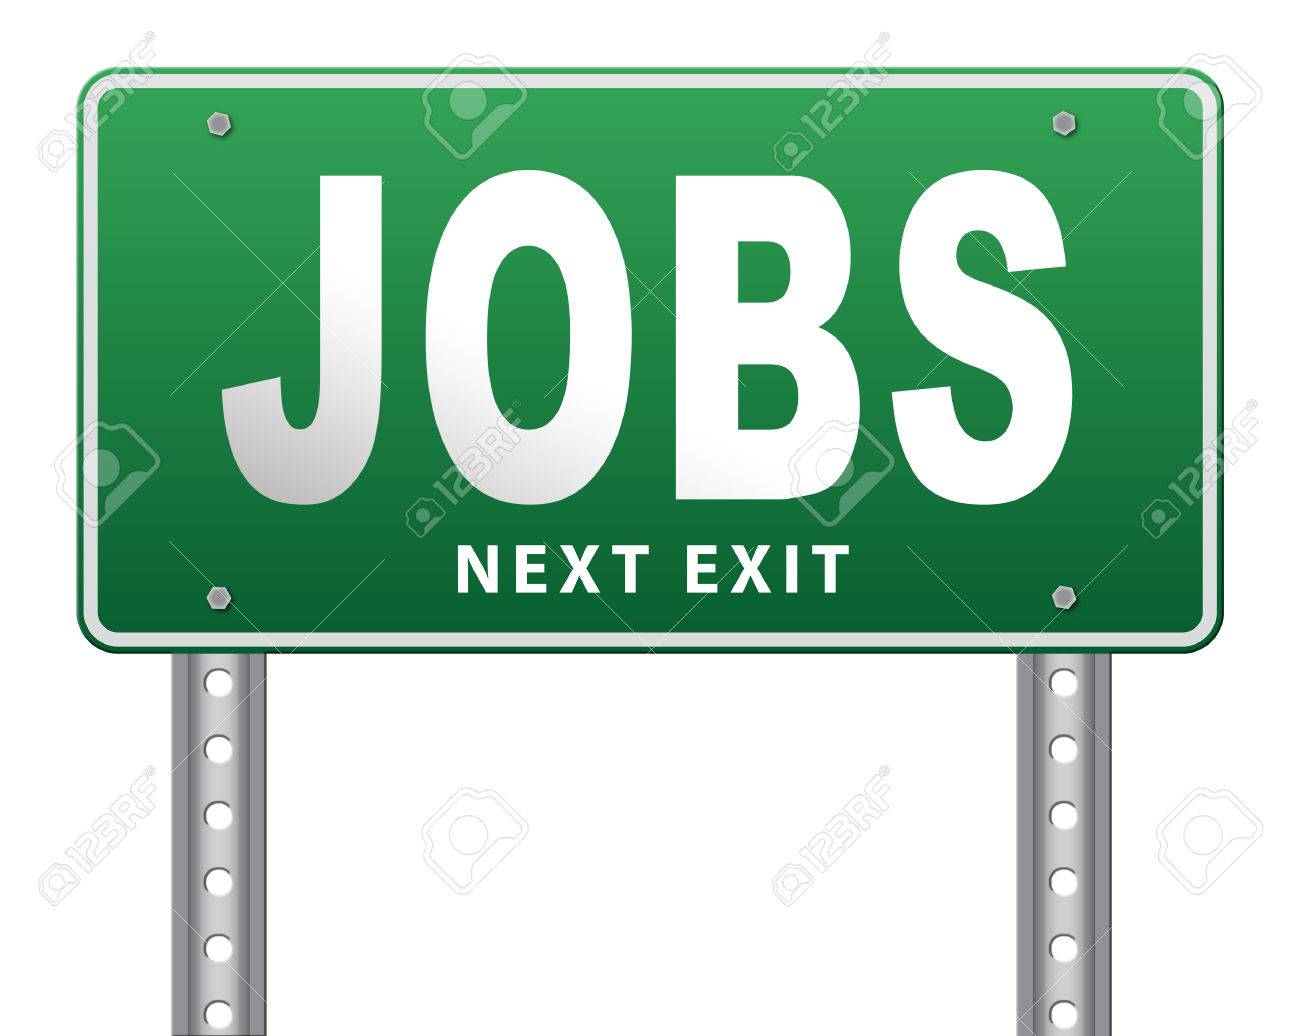 01b927e057 job search vacancy jobs online application help wanted hiring now ad advert  advertising road sign billboard